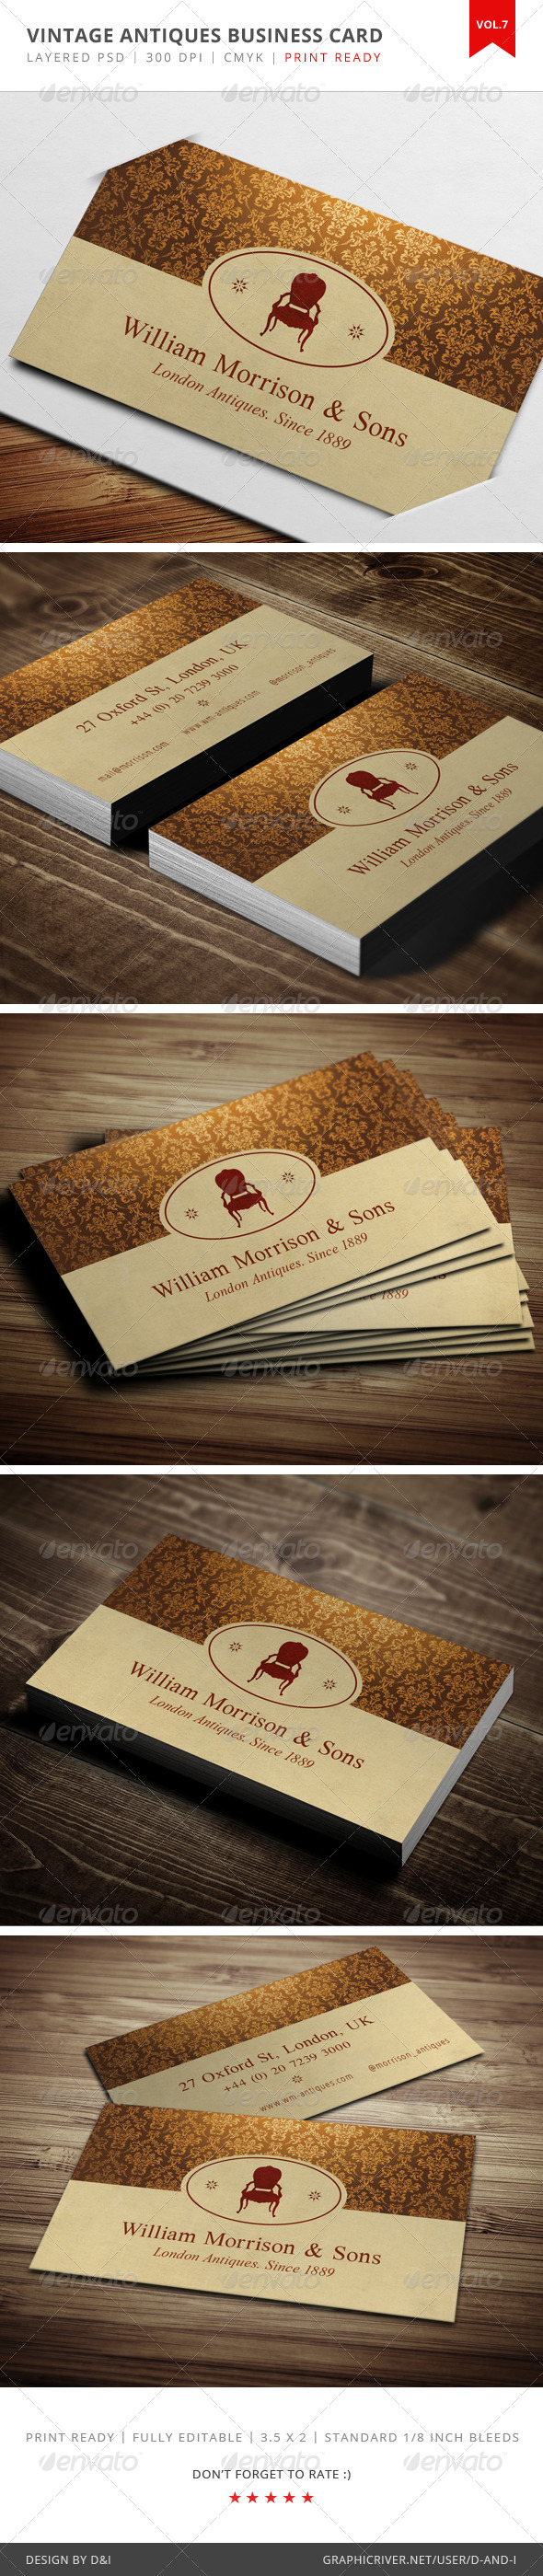 GraphicRiver Vintage Antiques Business Card Vol.7 4065833